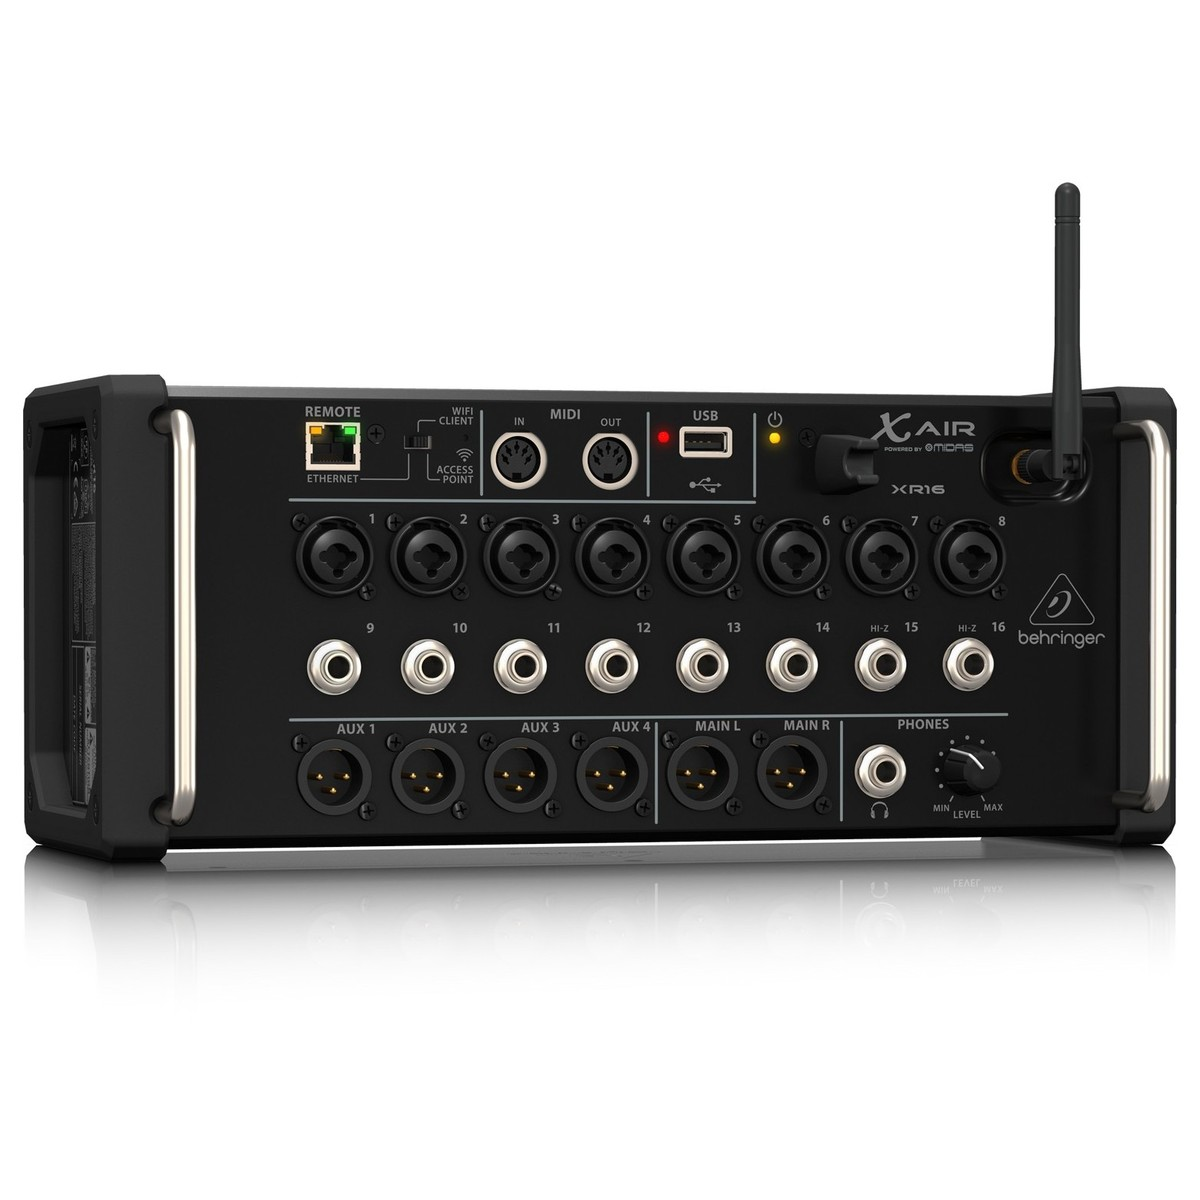 behringer x air xr16 16 channel digital mixer b stock at gear4music. Black Bedroom Furniture Sets. Home Design Ideas